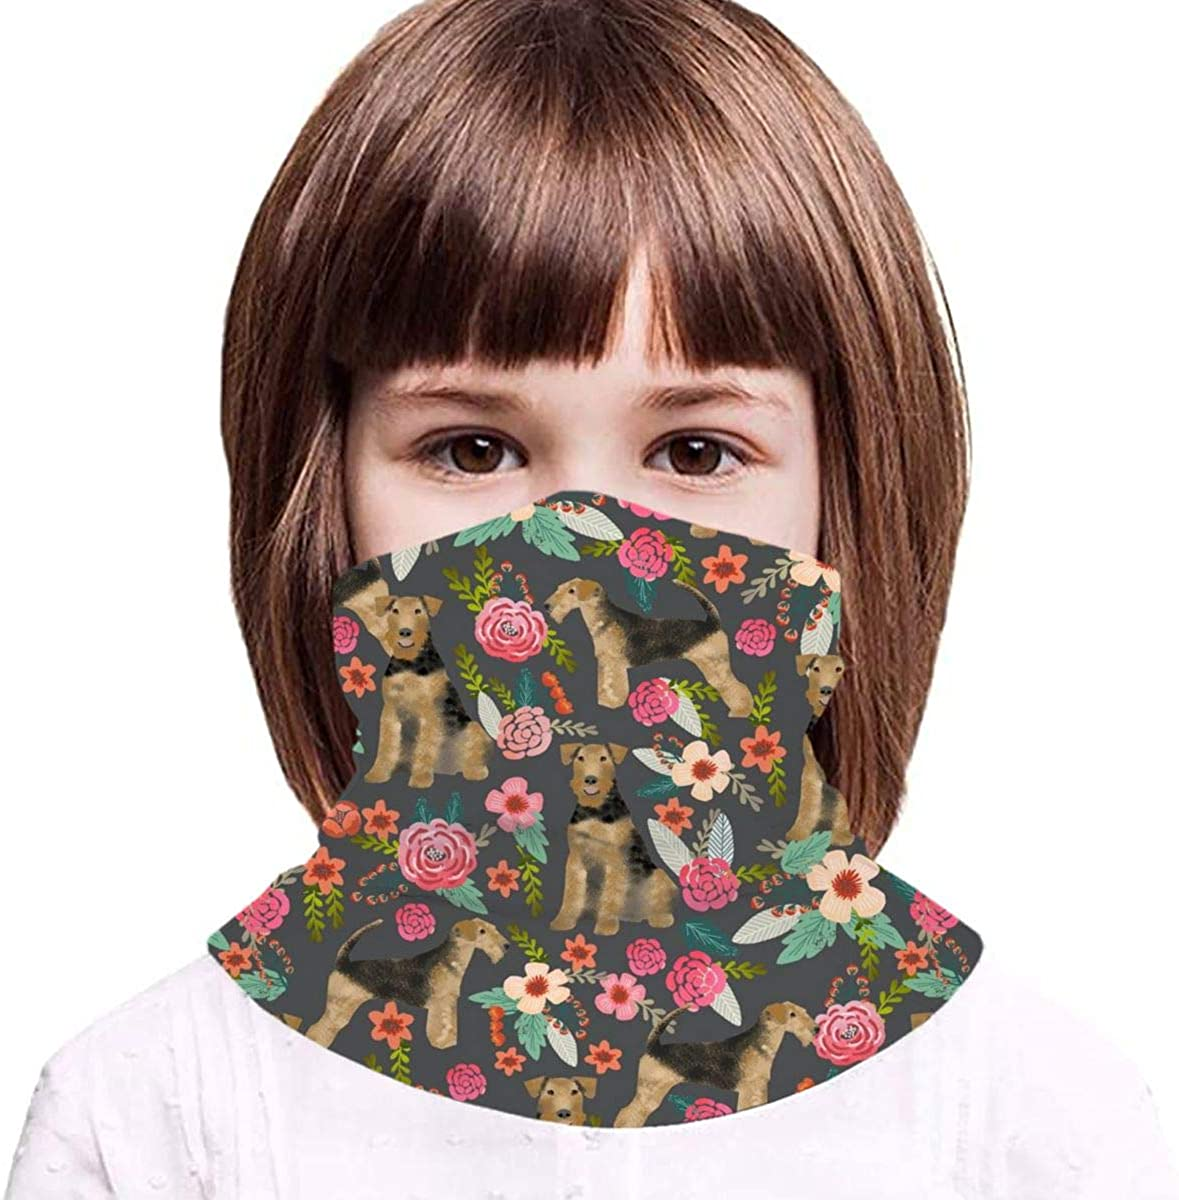 Terrier Dog Cute Dogs Spring Florals Floral Spring Design Kids Face Mask Dust Sun UV Protection Neck Gaiter Balaclava Face Cover Scarf Summer Breathable for Cycling Fishing Outdoors